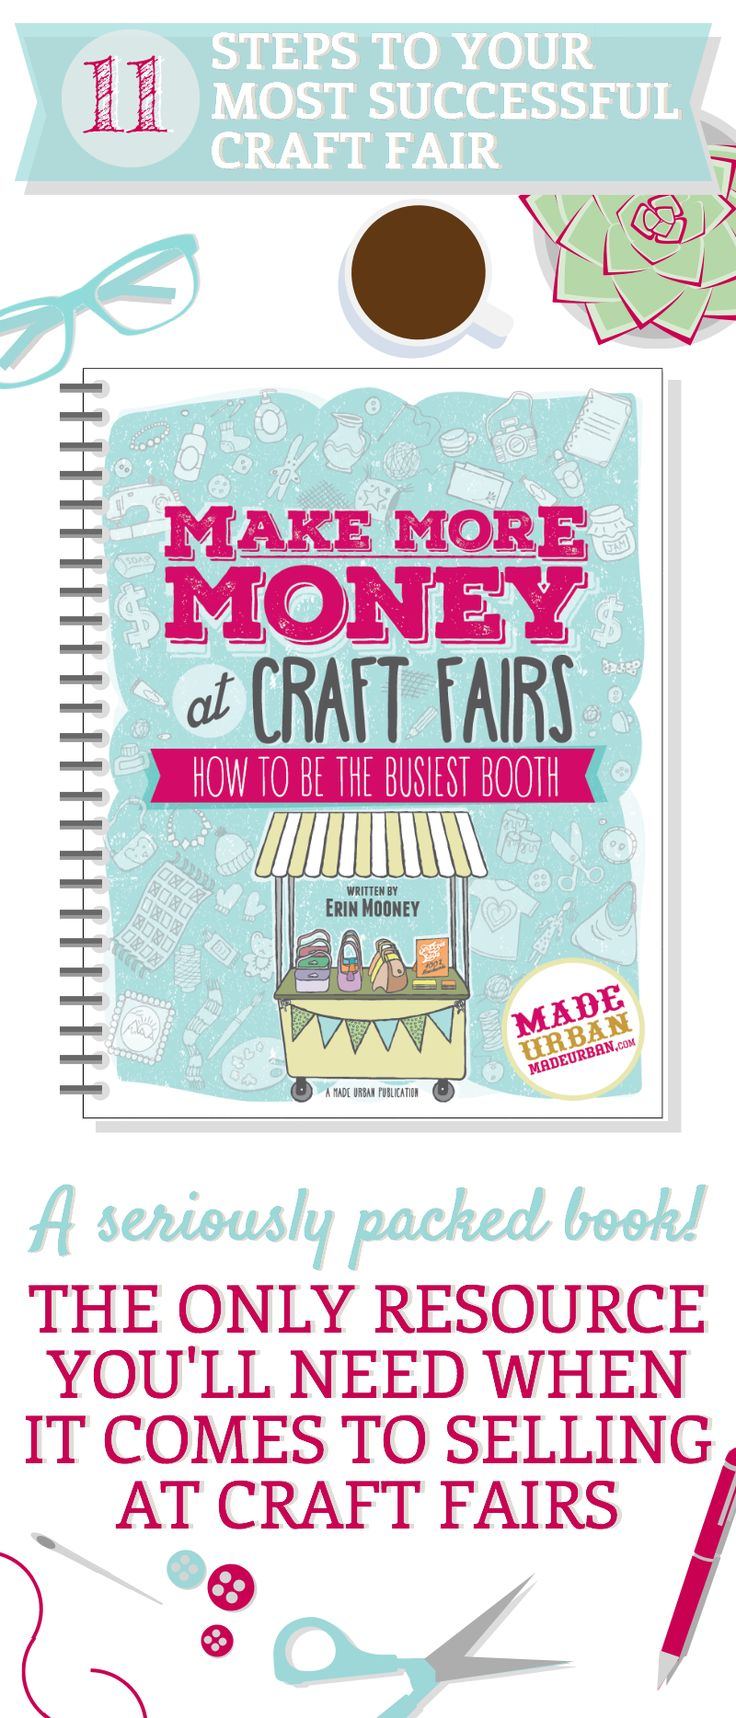 MAKE MORE MONEY AT CRAFT FAIRS - How to Be the Busiest Booth. Packed full of info on getting ready to sell your handmade products at craft shows, selecting the right ones, ensuring you're accepted, creating a powerful display, selling techniques for introverts and reaching your financial goals.